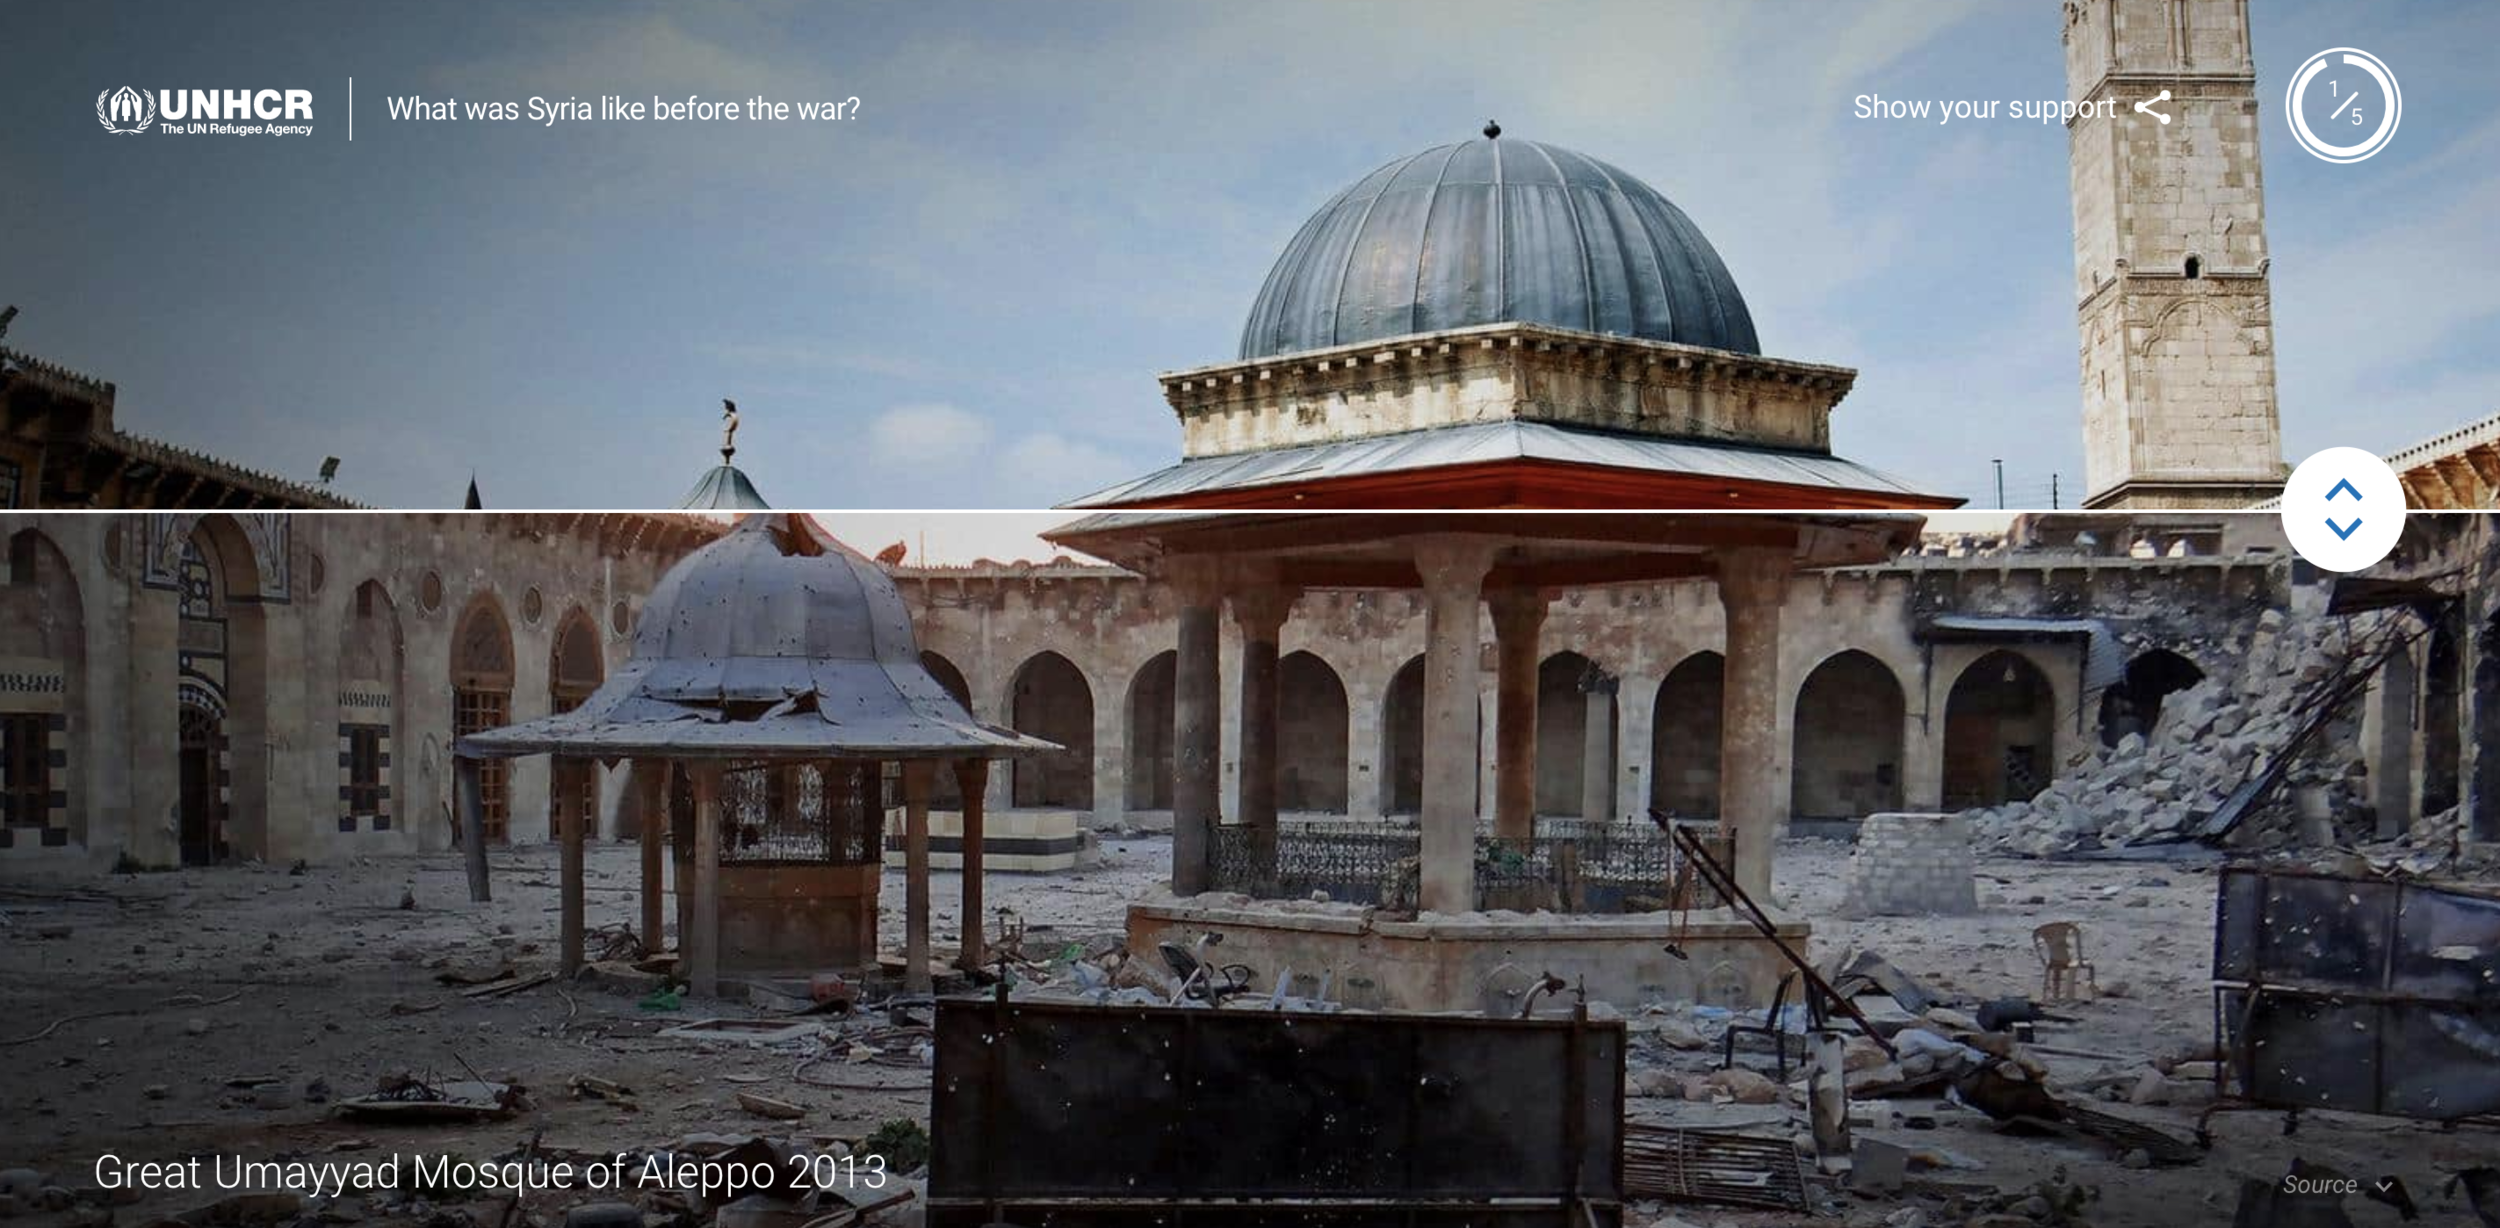 Simple, stark visuals.  Real images   showcased insurmountable change affecting the region, as this sliding image comparing the Grand Umayaad Mosque of Aleppo in 2013 v. before the war. Visitors controlled their experience so they could see the devastation and impact of the crisis over time.